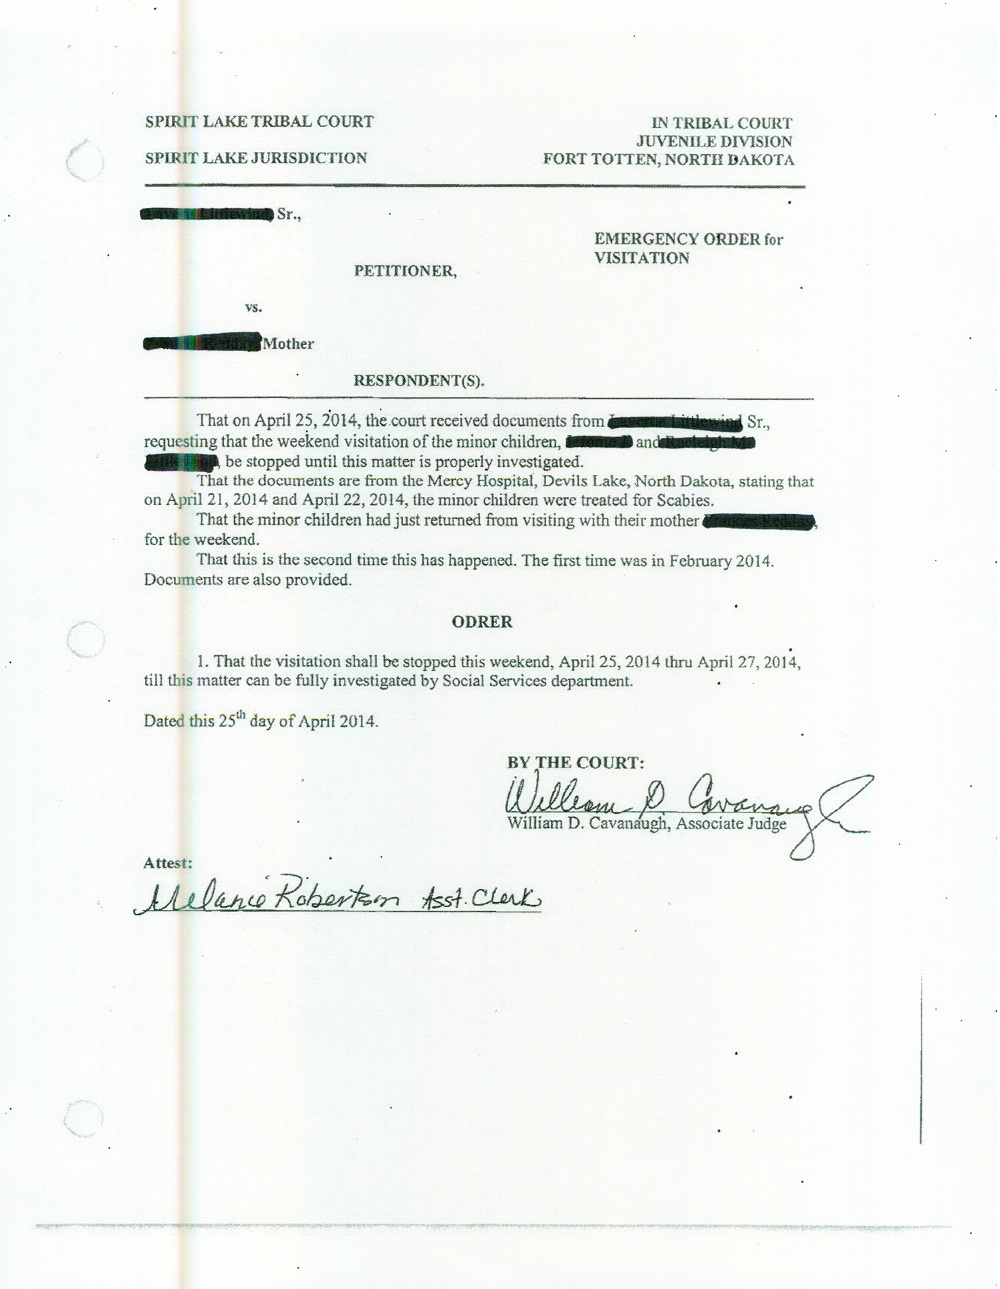 Emergency Visitation order, redacted April 25, 2014